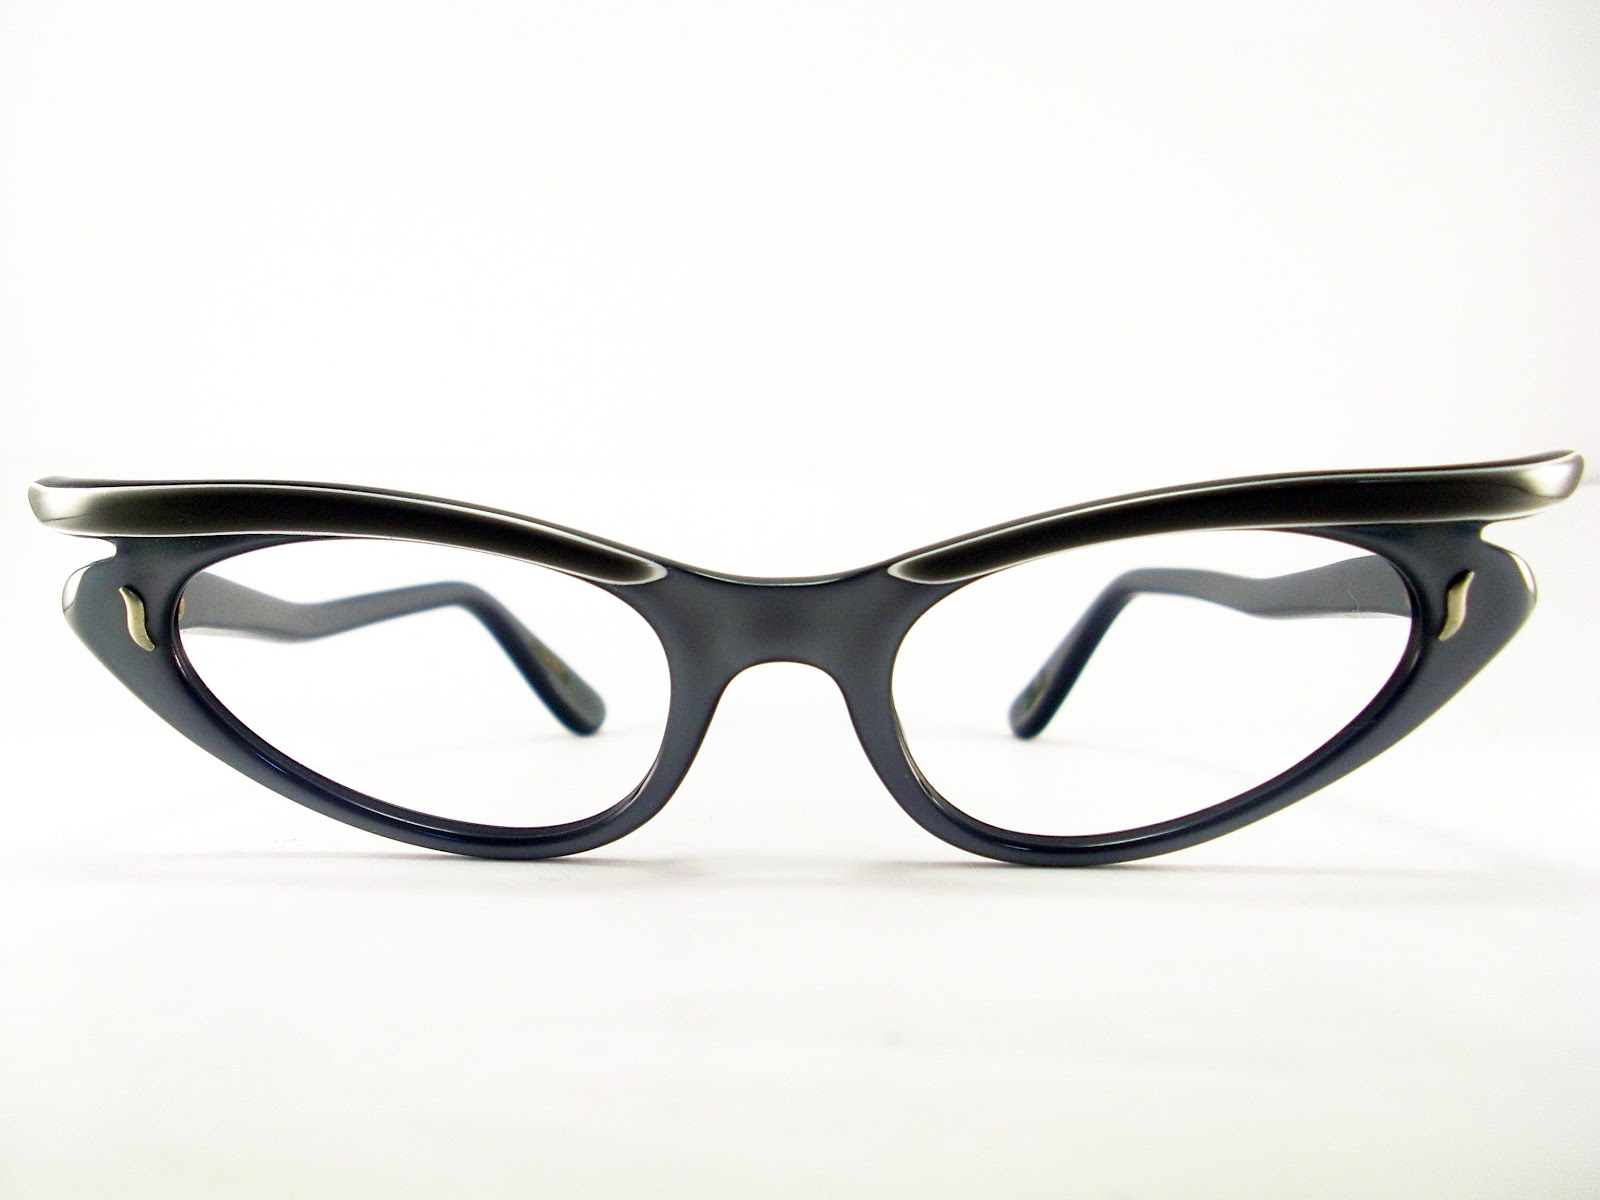 Cat Eyeglass Frames : Vintage Eyeglasses Frames Eyewear Sunglasses 50S: CAT EYE ...